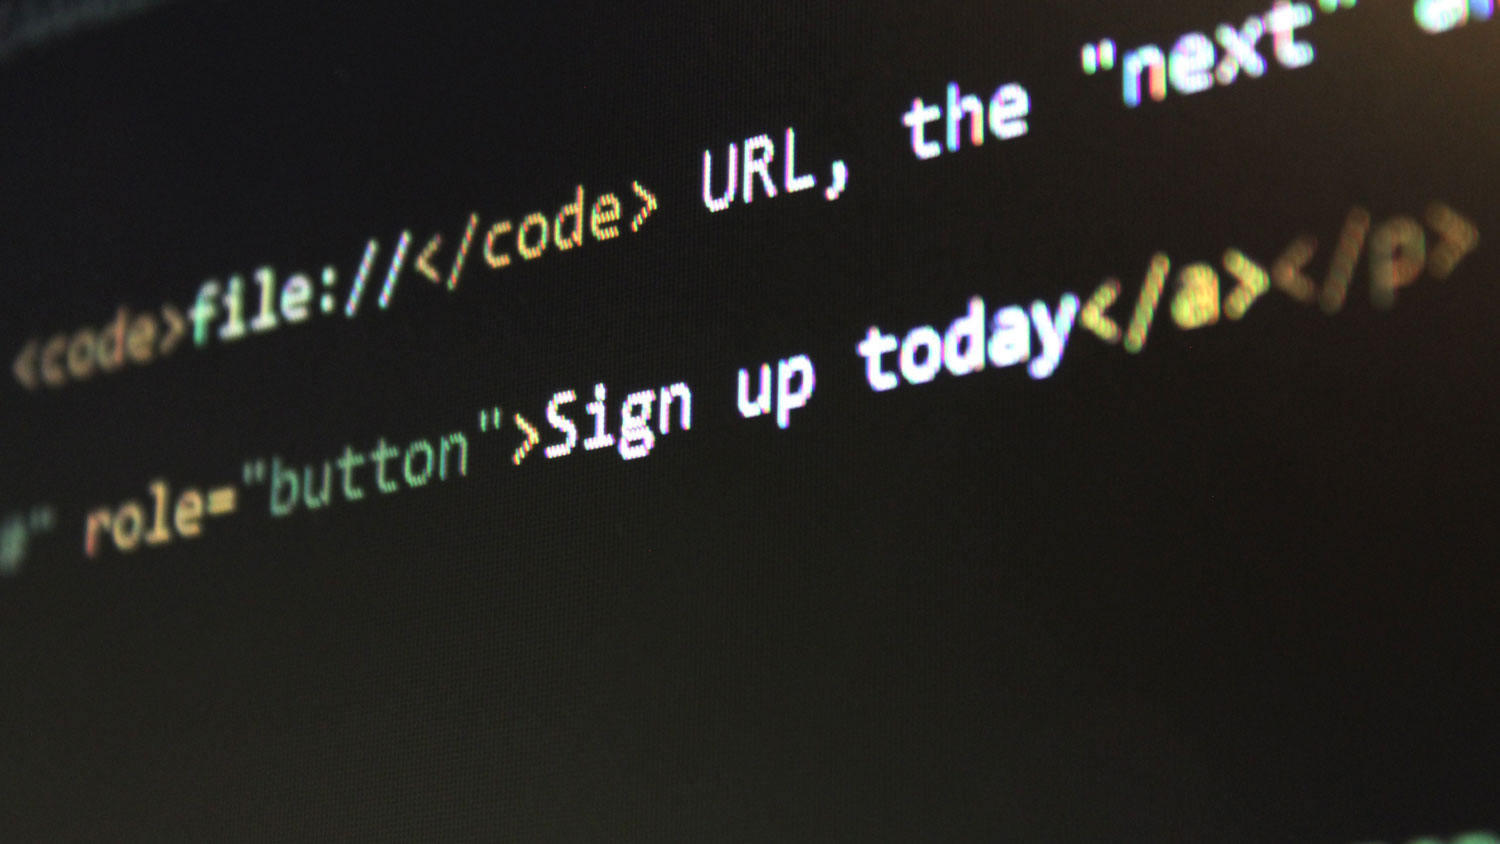 HTML code written sign up today